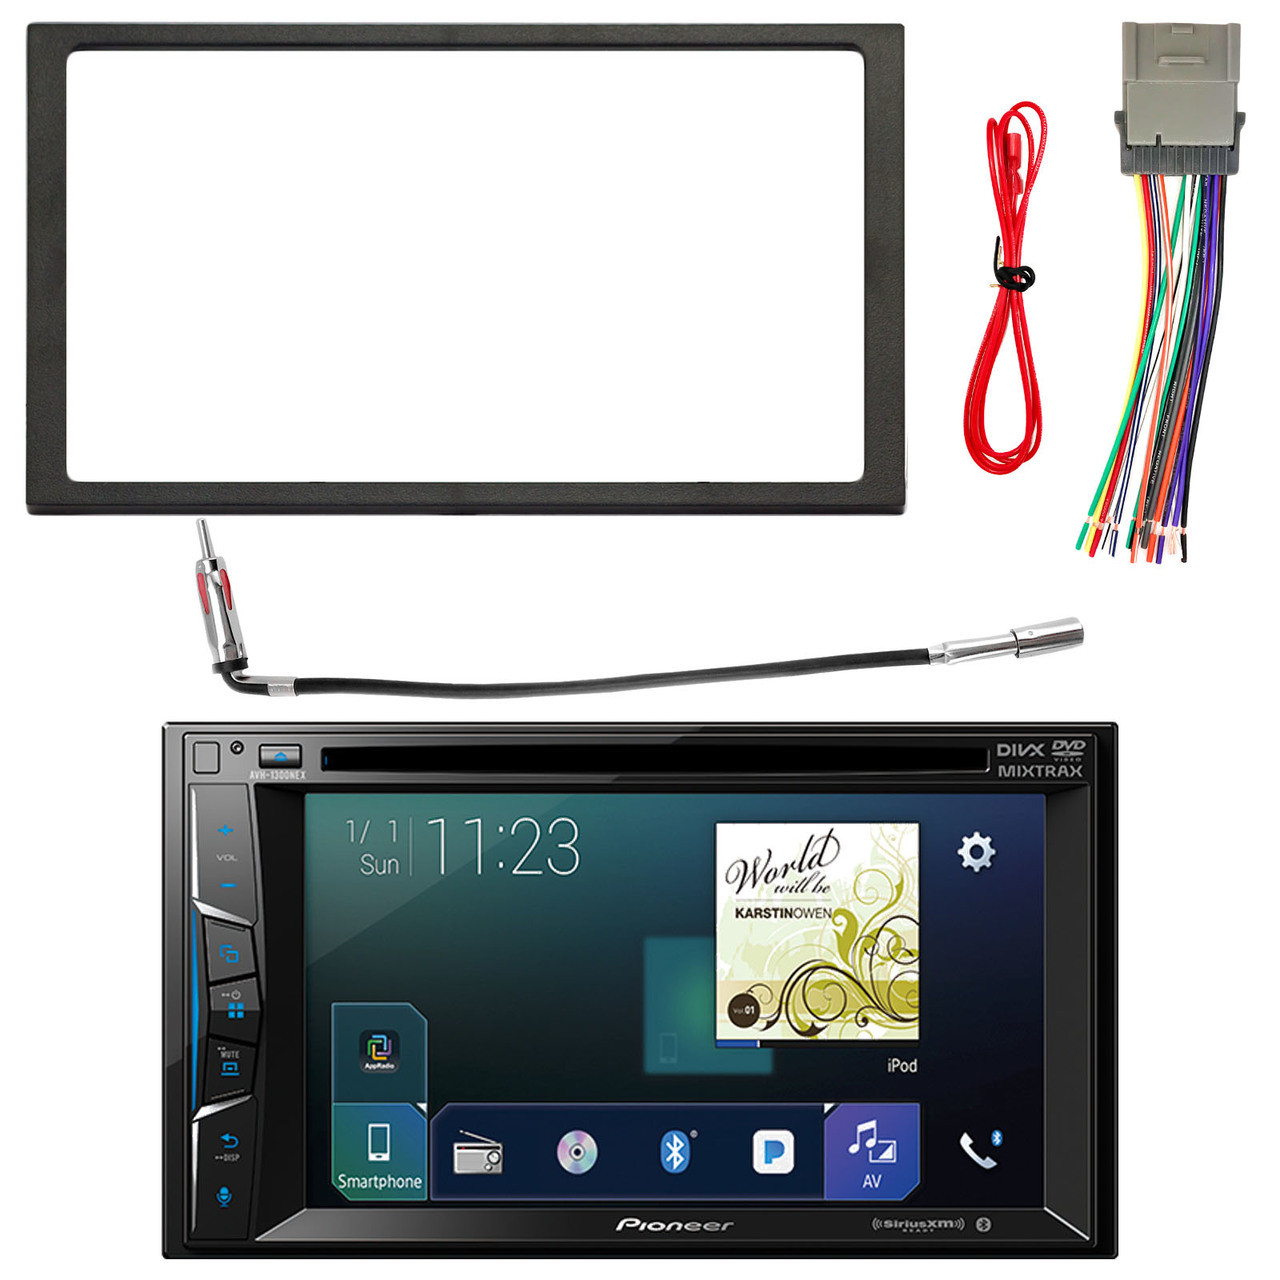 pioneer 6 2 bluetooth siriusxm ready dvd receiver enrock double din install dash kit enrock stereo wiring harness enrock antenna adapter select  [ 1280 x 1280 Pixel ]